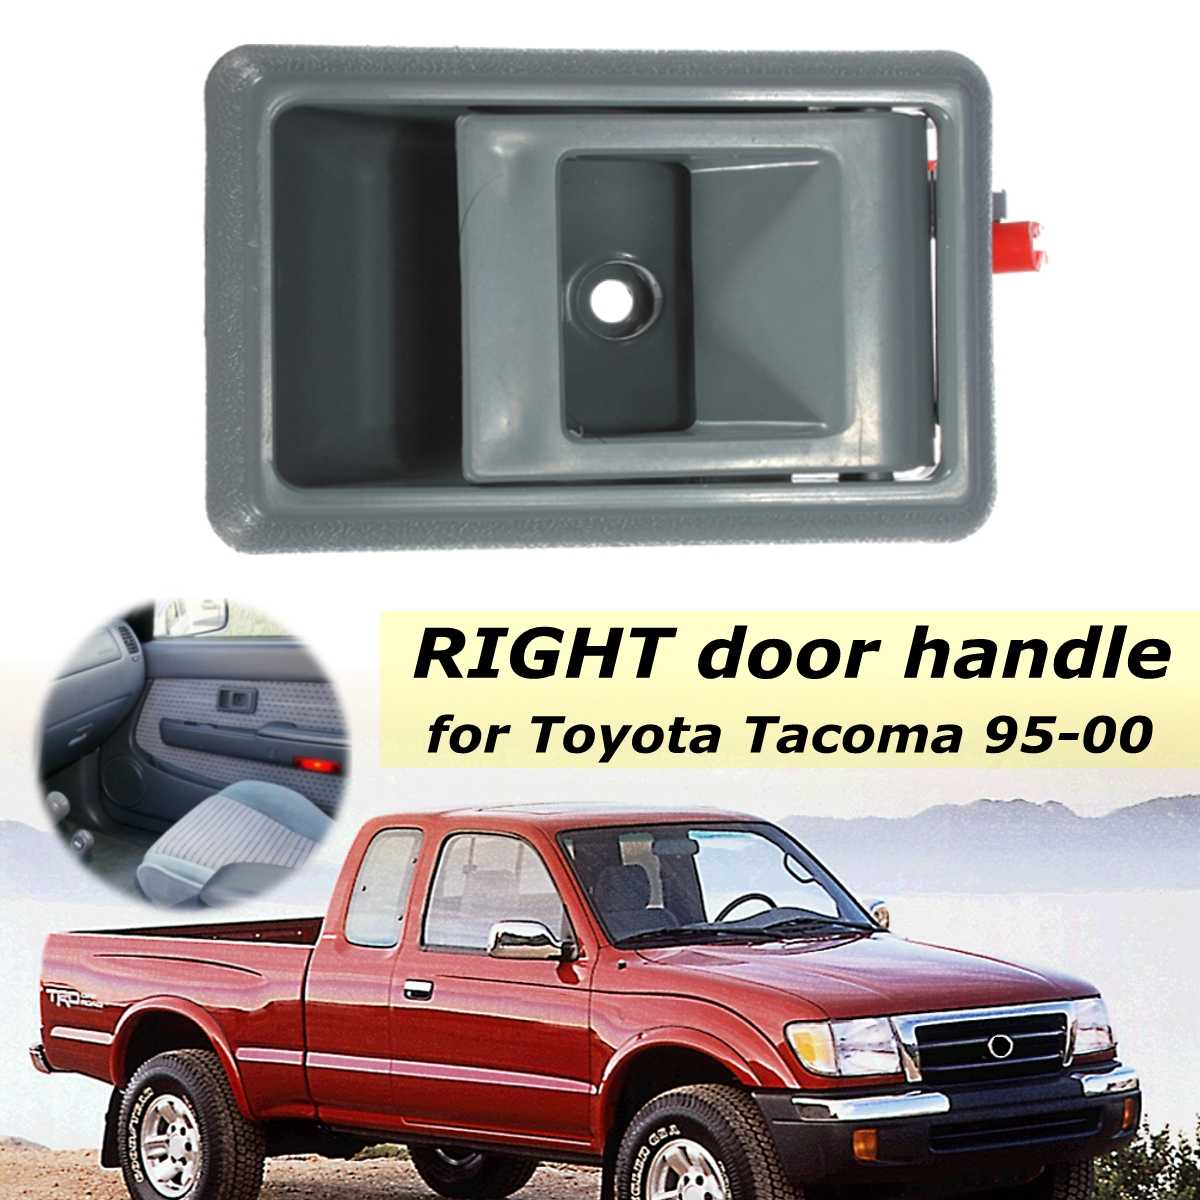 HILUX PICKUP 1989-1997 LEFT SIDE DOOR HANDLE FIT FOR TOYOTA 4RUNNER